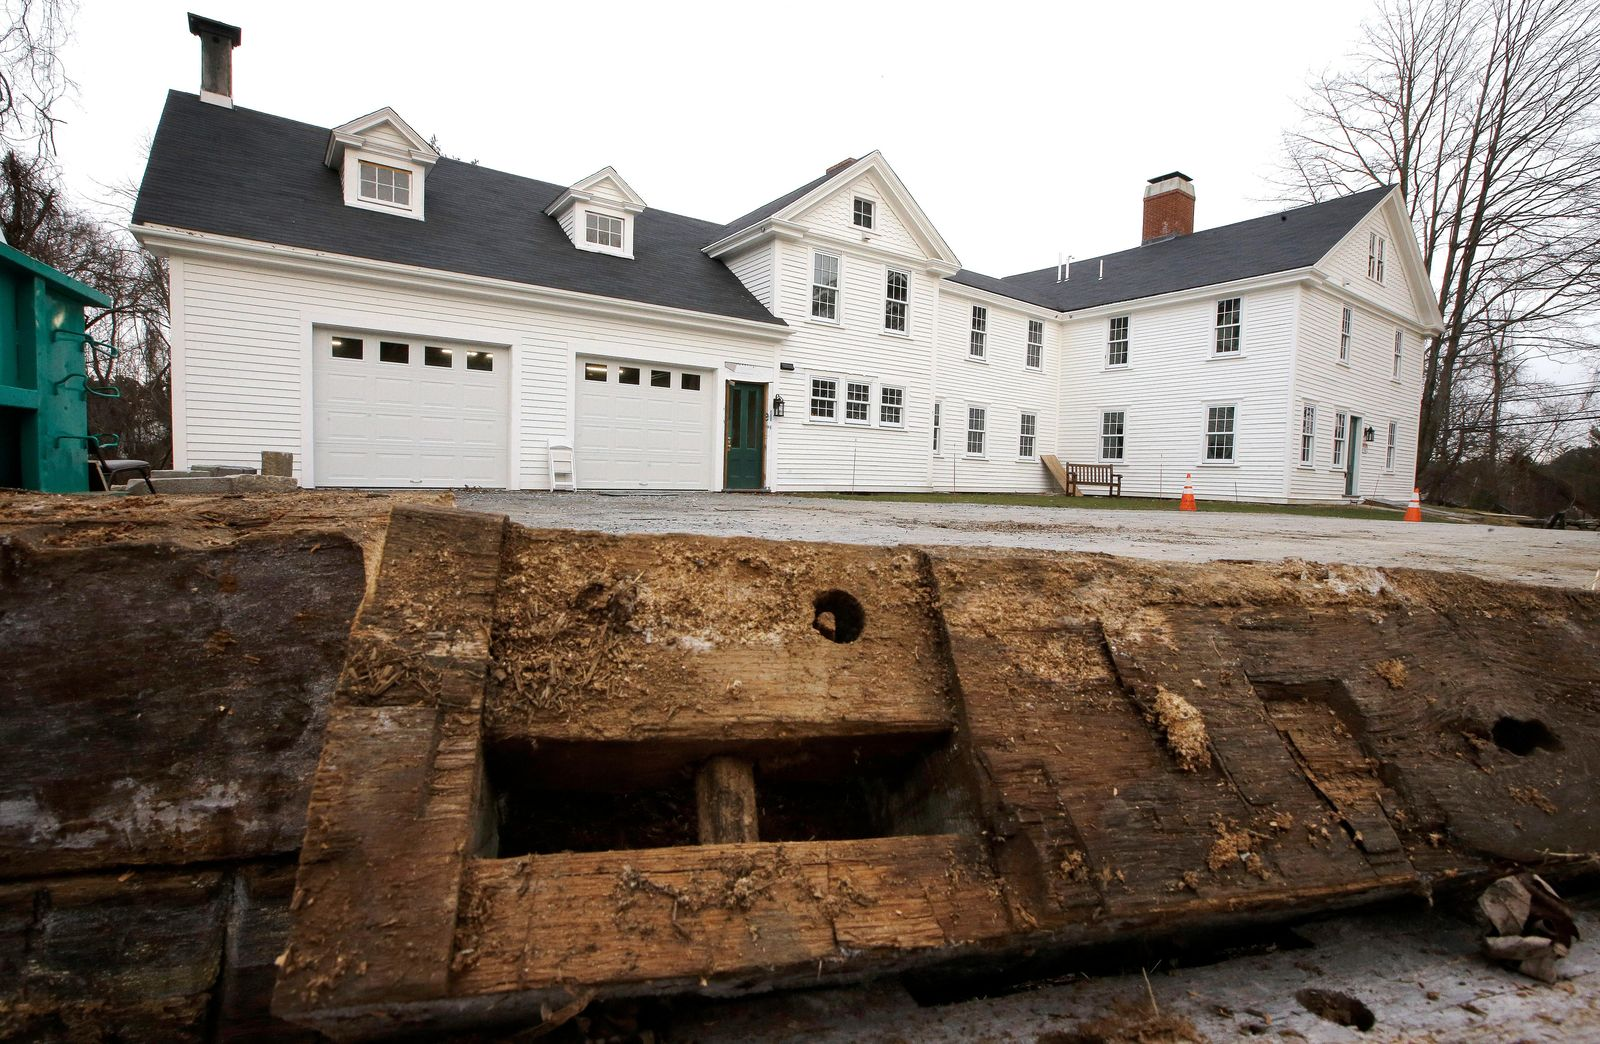 n this Thursday, Dec. 13, 2018 photo, a discarded beam rests in the driveway of the home where Sarah Clayes lived, in Framingham, Mass., after leaving Salem, Mass., following the 1692 witch trials. Clayes was jailed during the witch trials but was freed in 1693 when the hysteria died down. (AP Photo/Steven Senne)